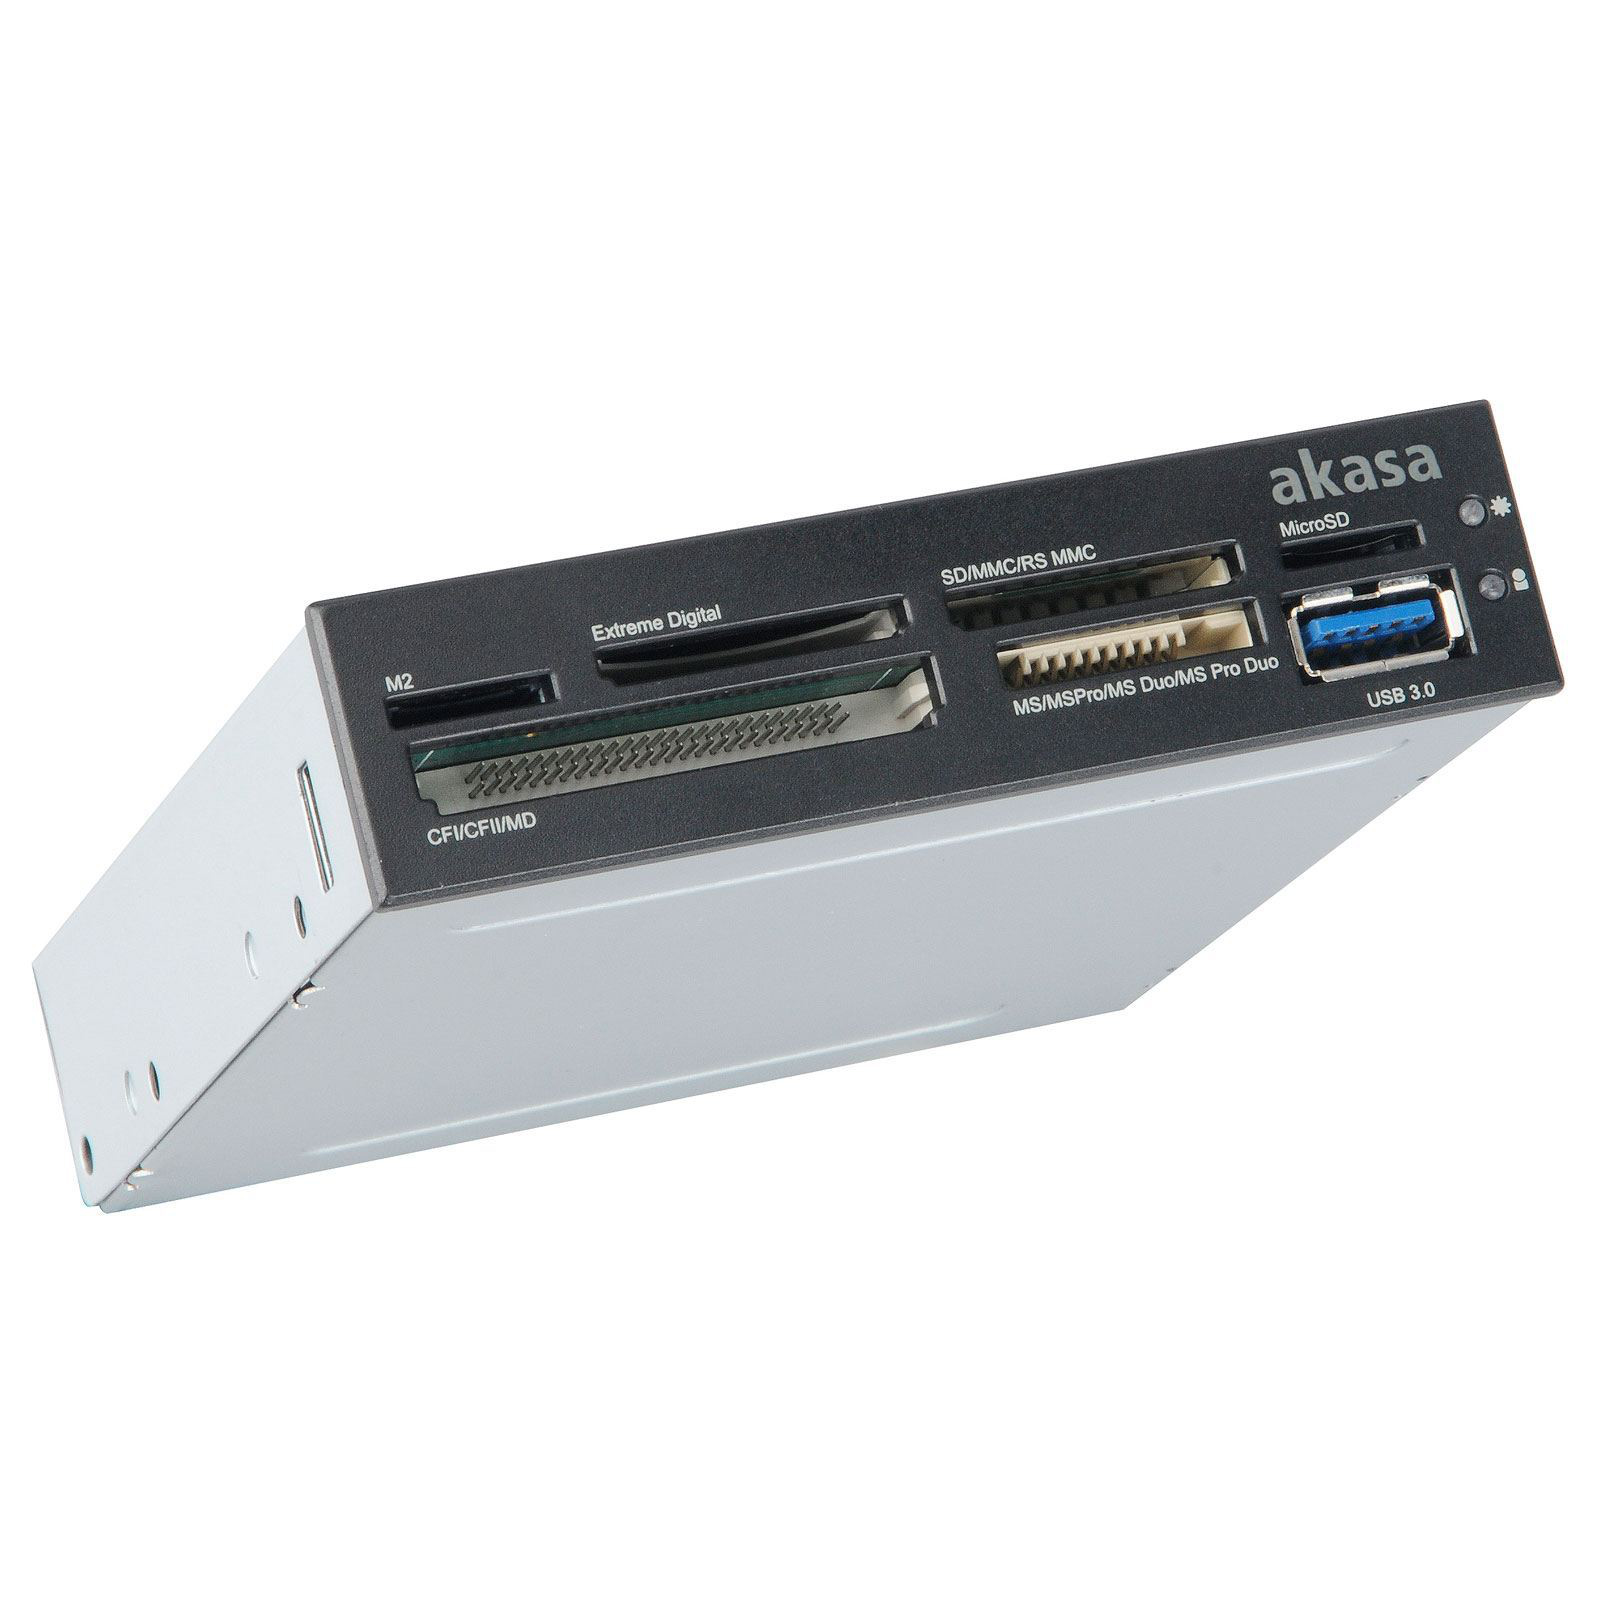 Akasa USB 3.0 SuperSpeed Internal USB 3.0 card reader